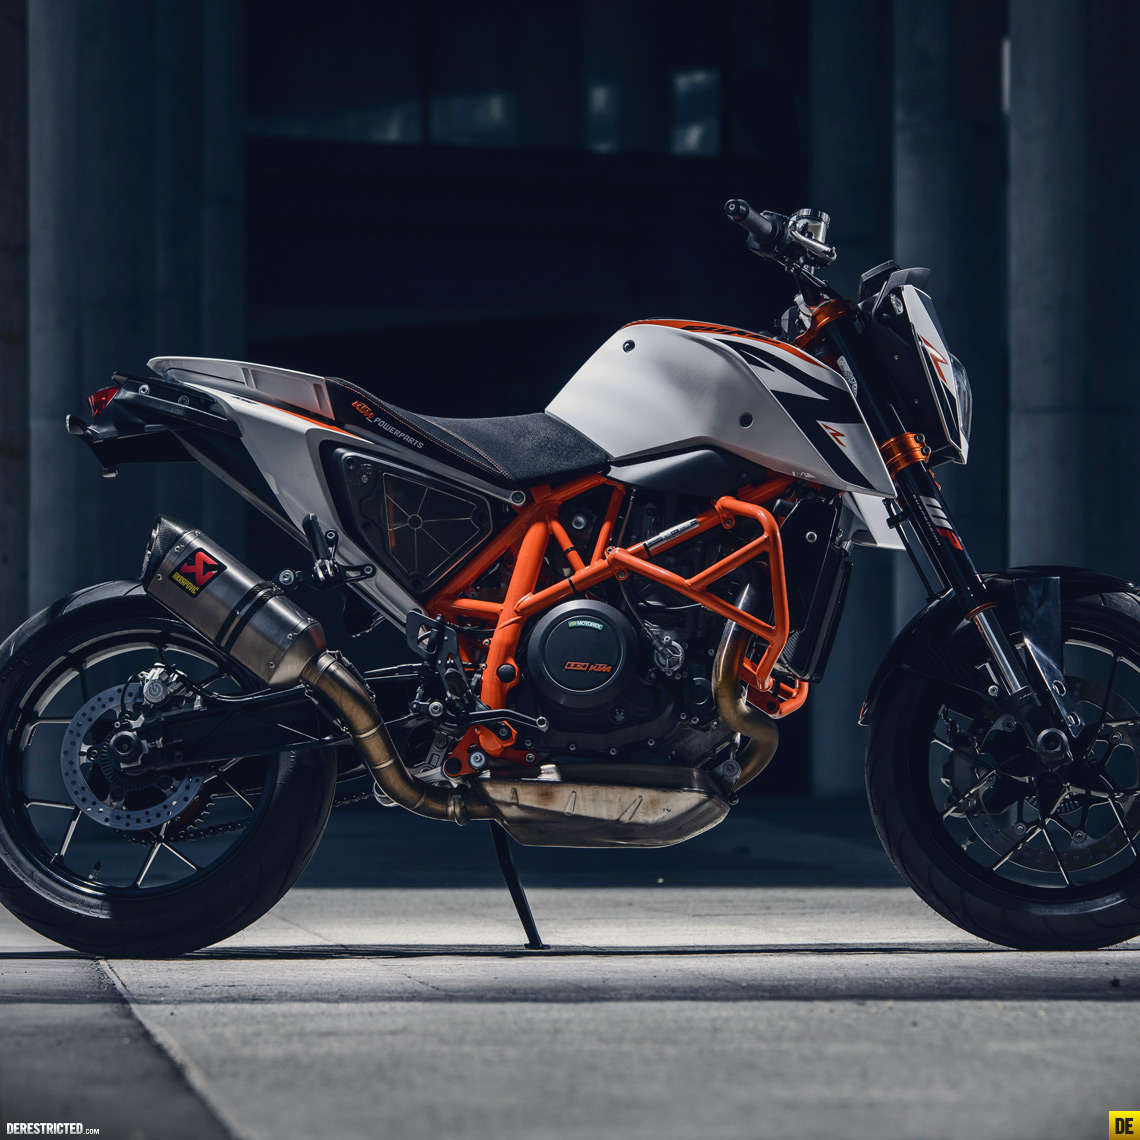 More photos from Sebas Romero, this time of the 2014 KTM 690 Duke R